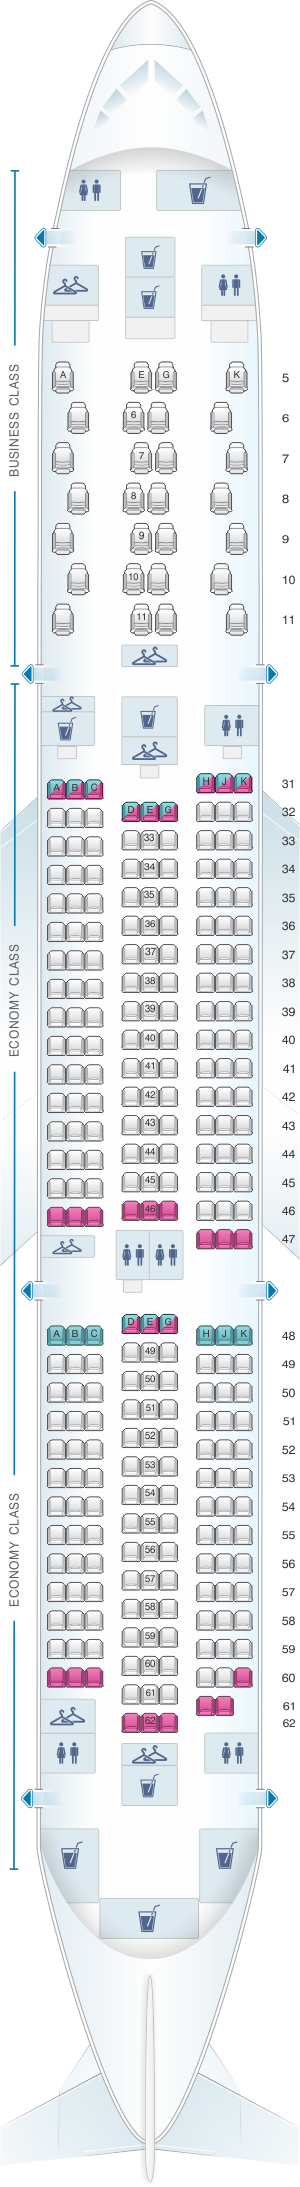 Seat map for China Southern Airlines Boeing B787 9 (78W)